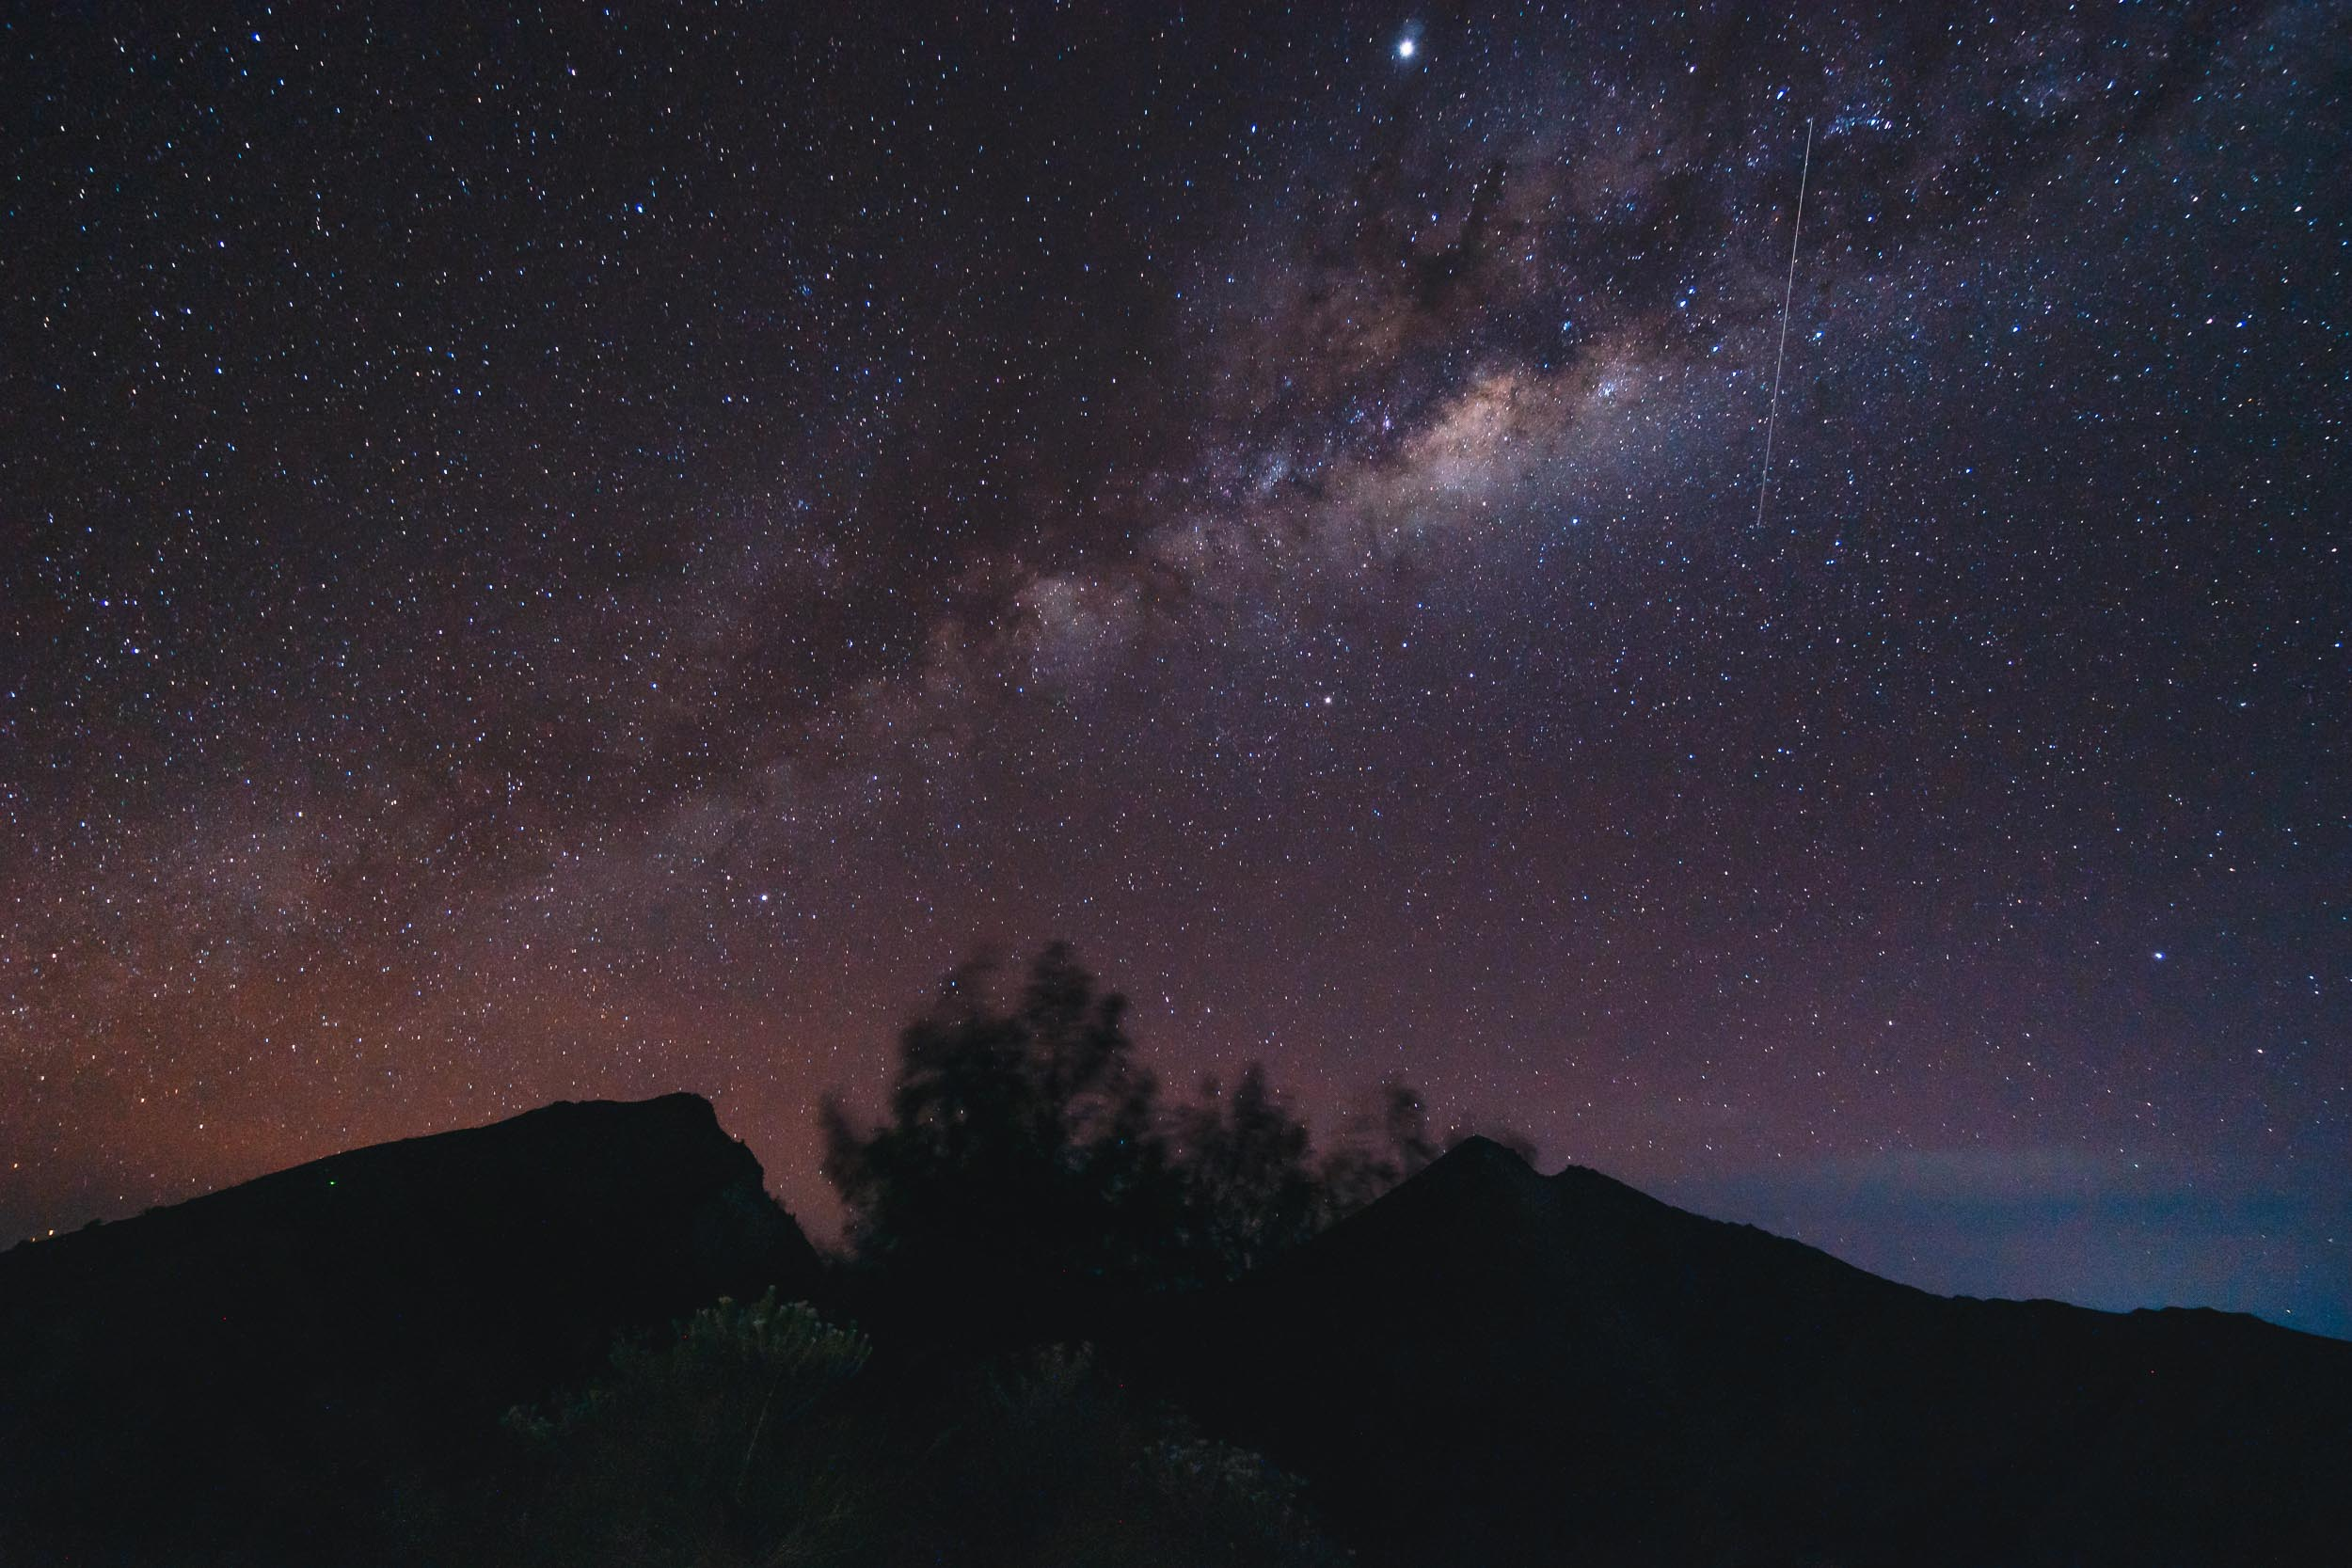 The Milky Way over the crater rim